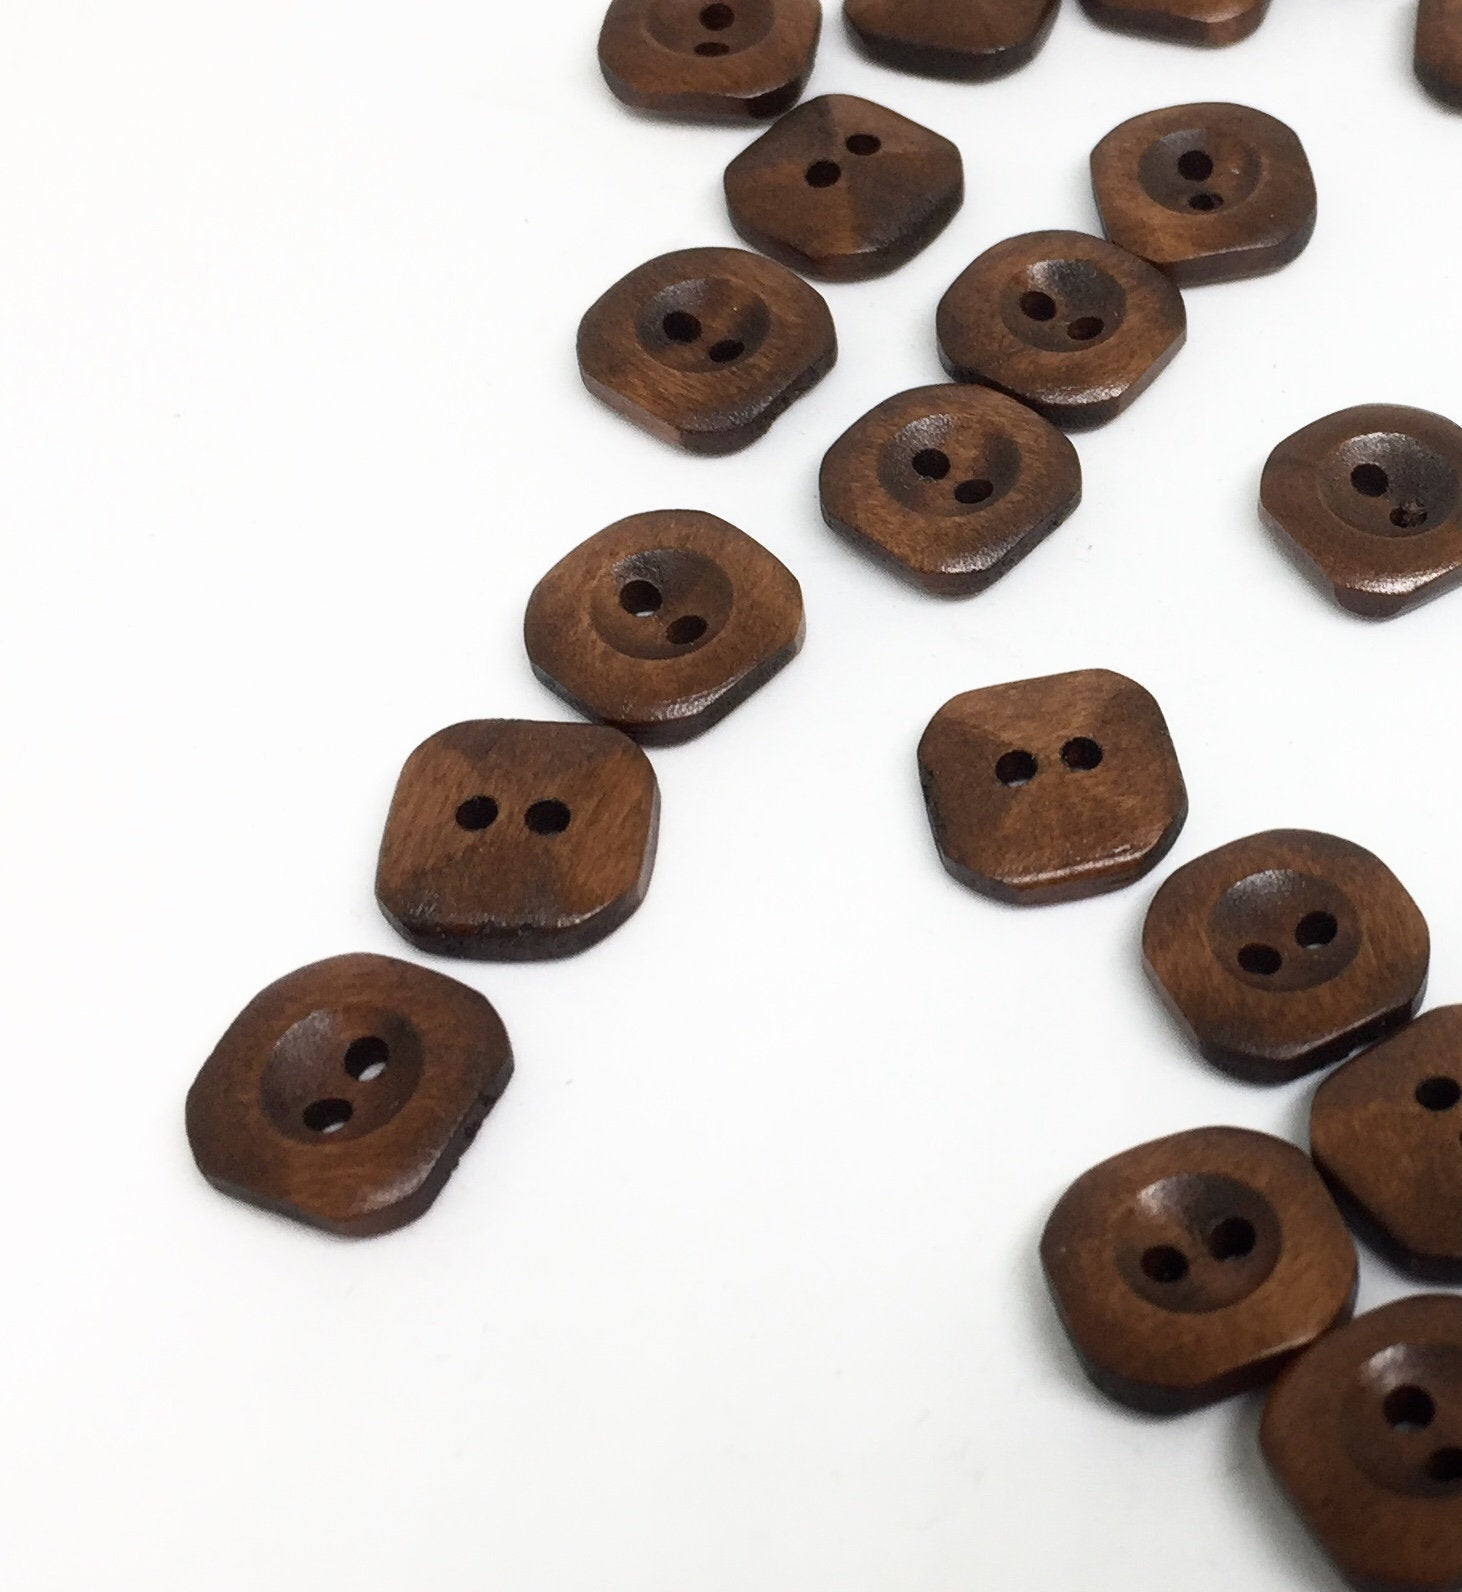 10 Dark Brown Wooden Buttons - Square - Round Corners - 15mm - 2 Hole